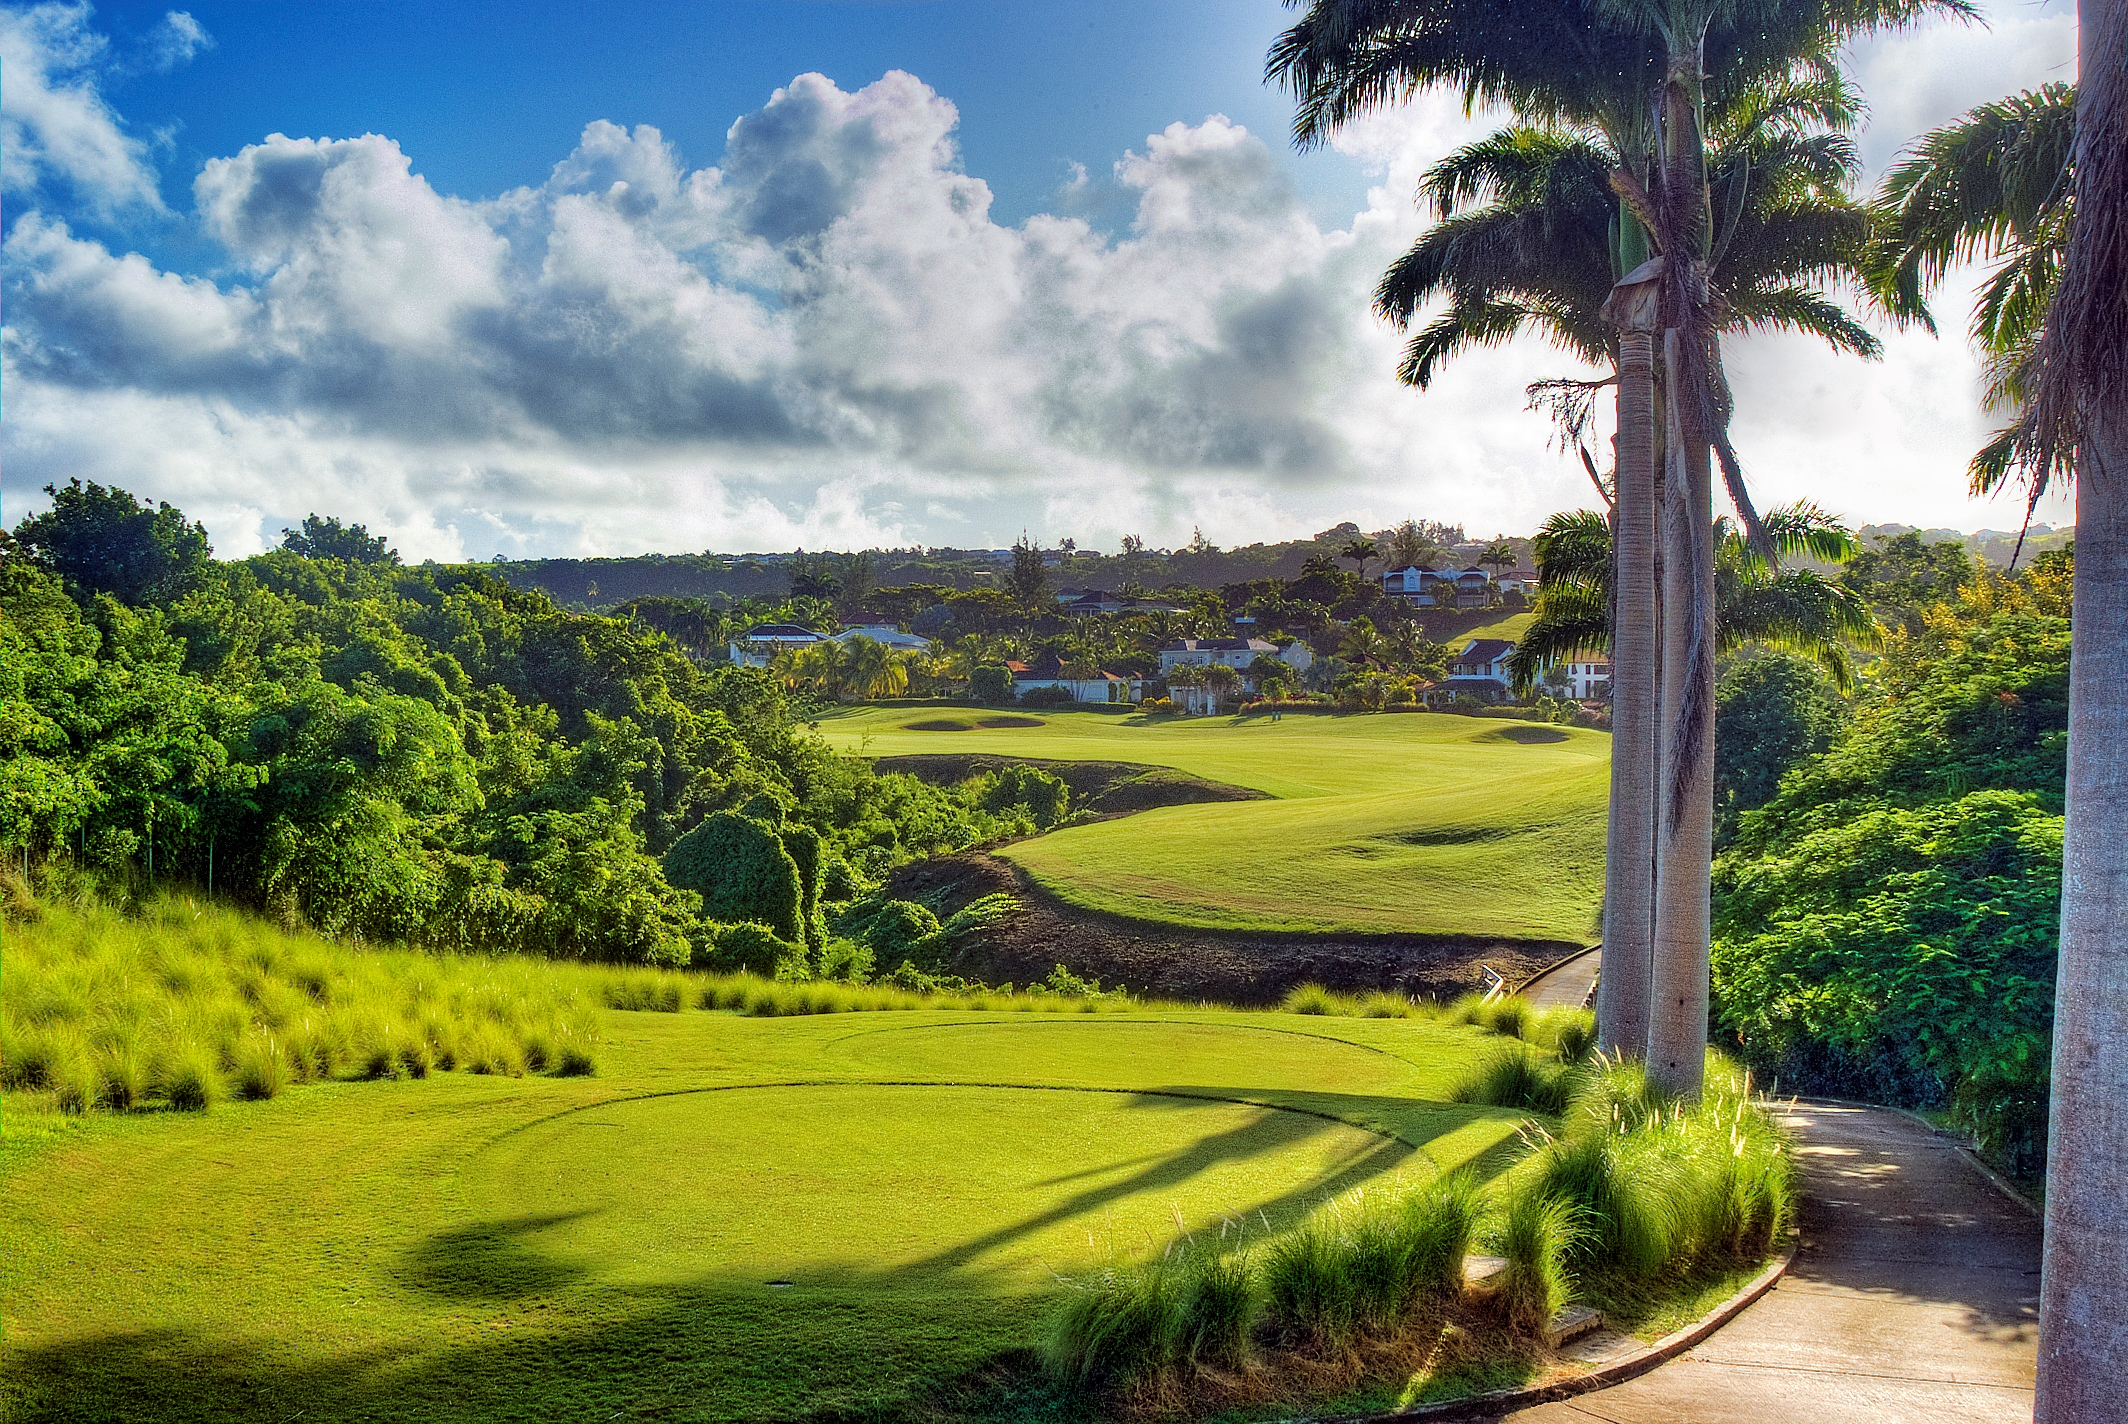 Longmuir is the director of golf at the stunning Royal Westmoreland Golf Resort in Barbados